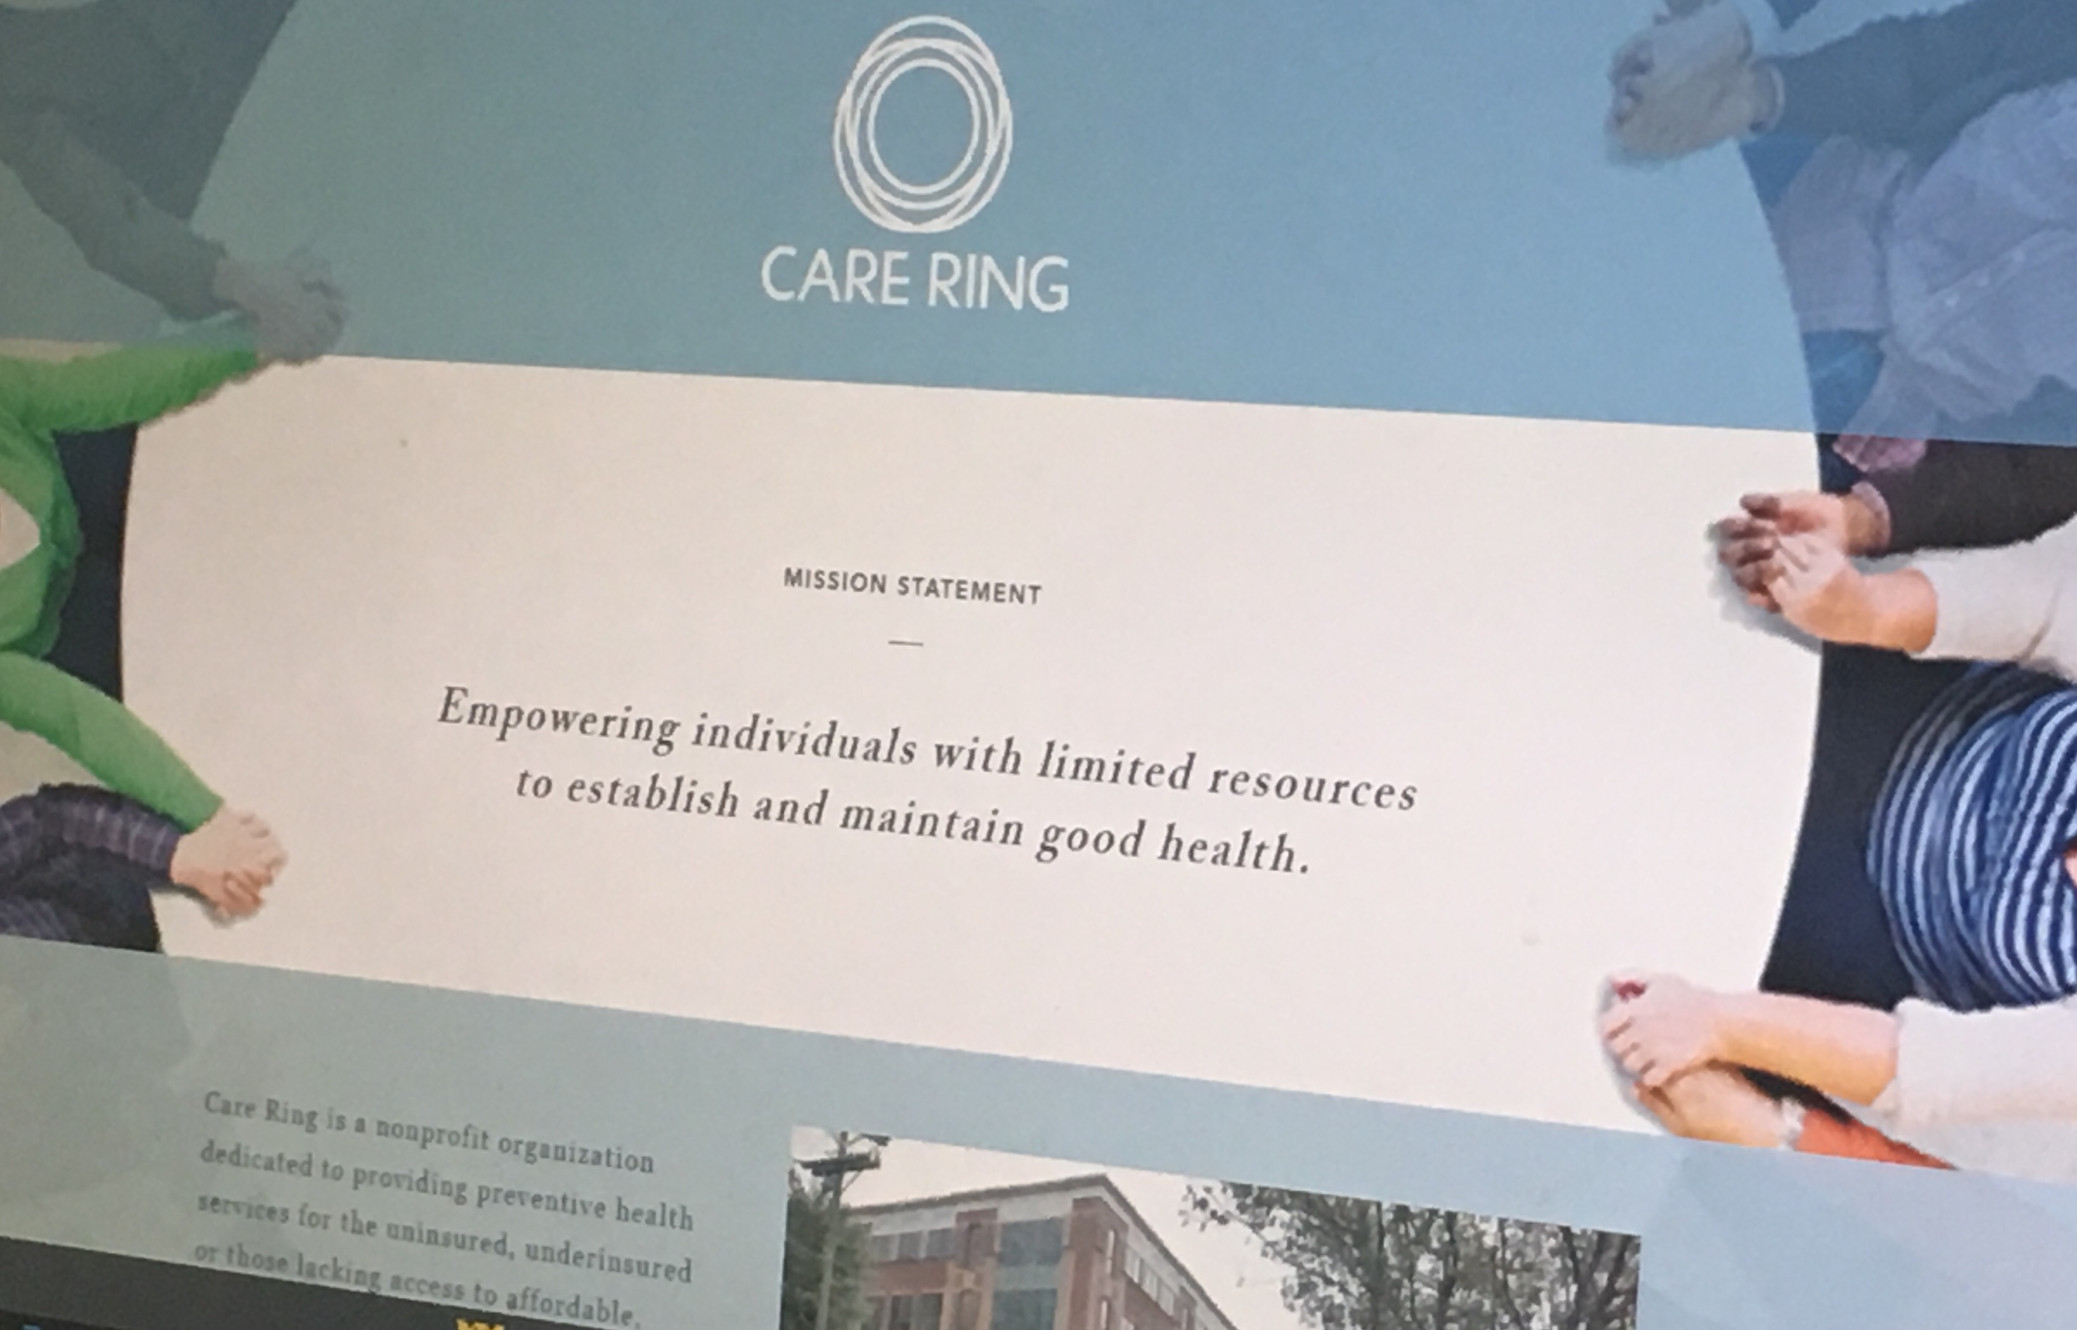 Care Ring Primary Care For People With Modest Resources, Charlotte NC